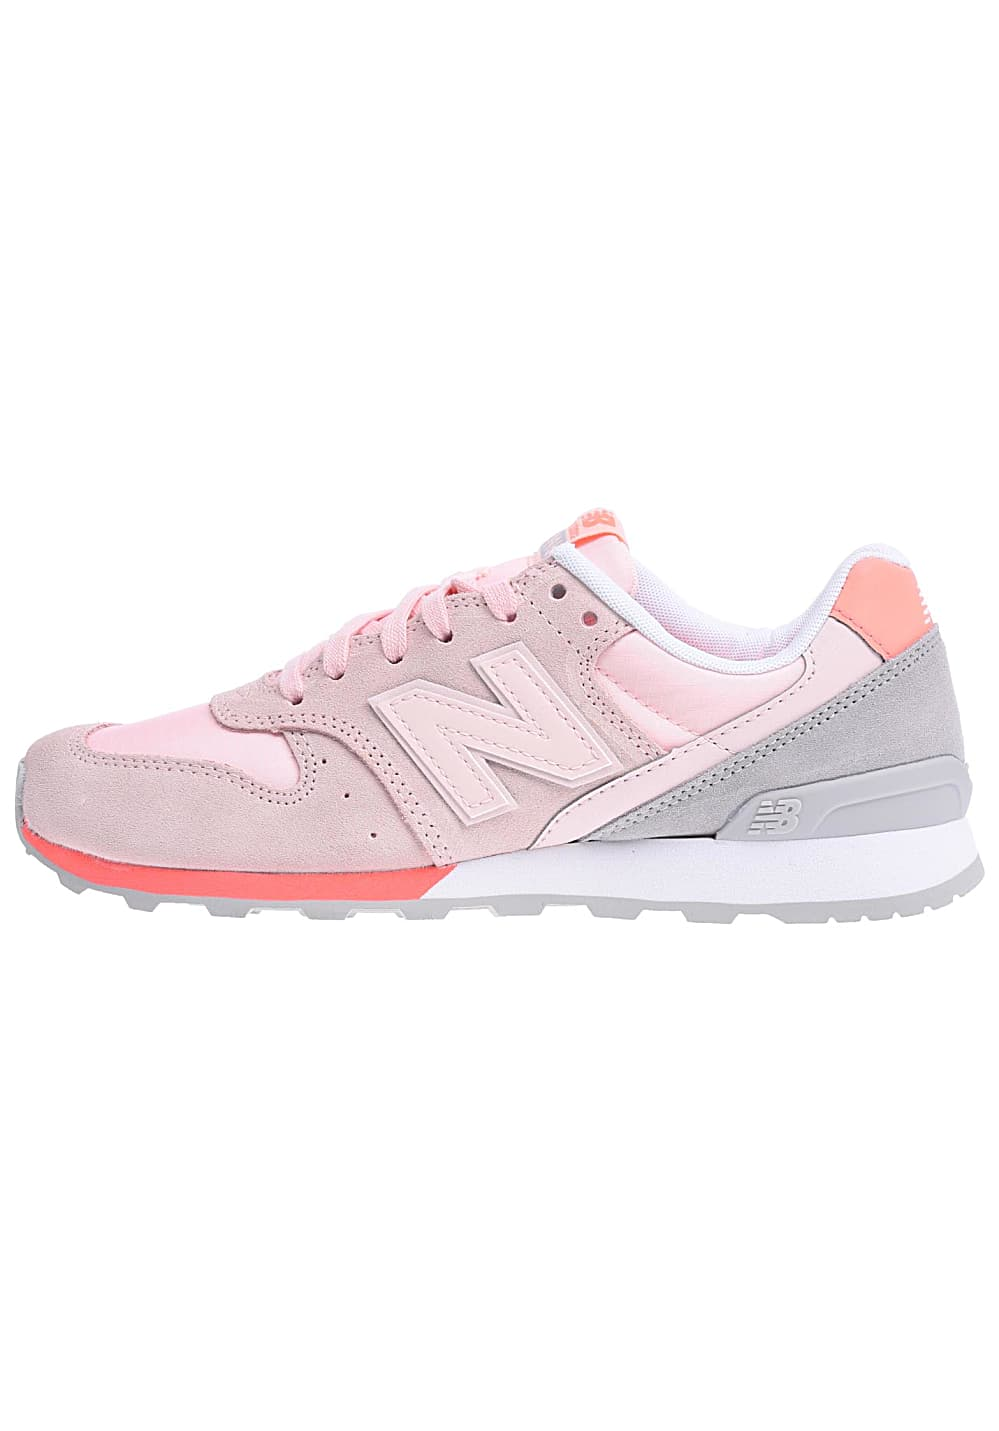 NEW BALANCE WR996 D - Sneaker für Damen - Pink - Planet Sports